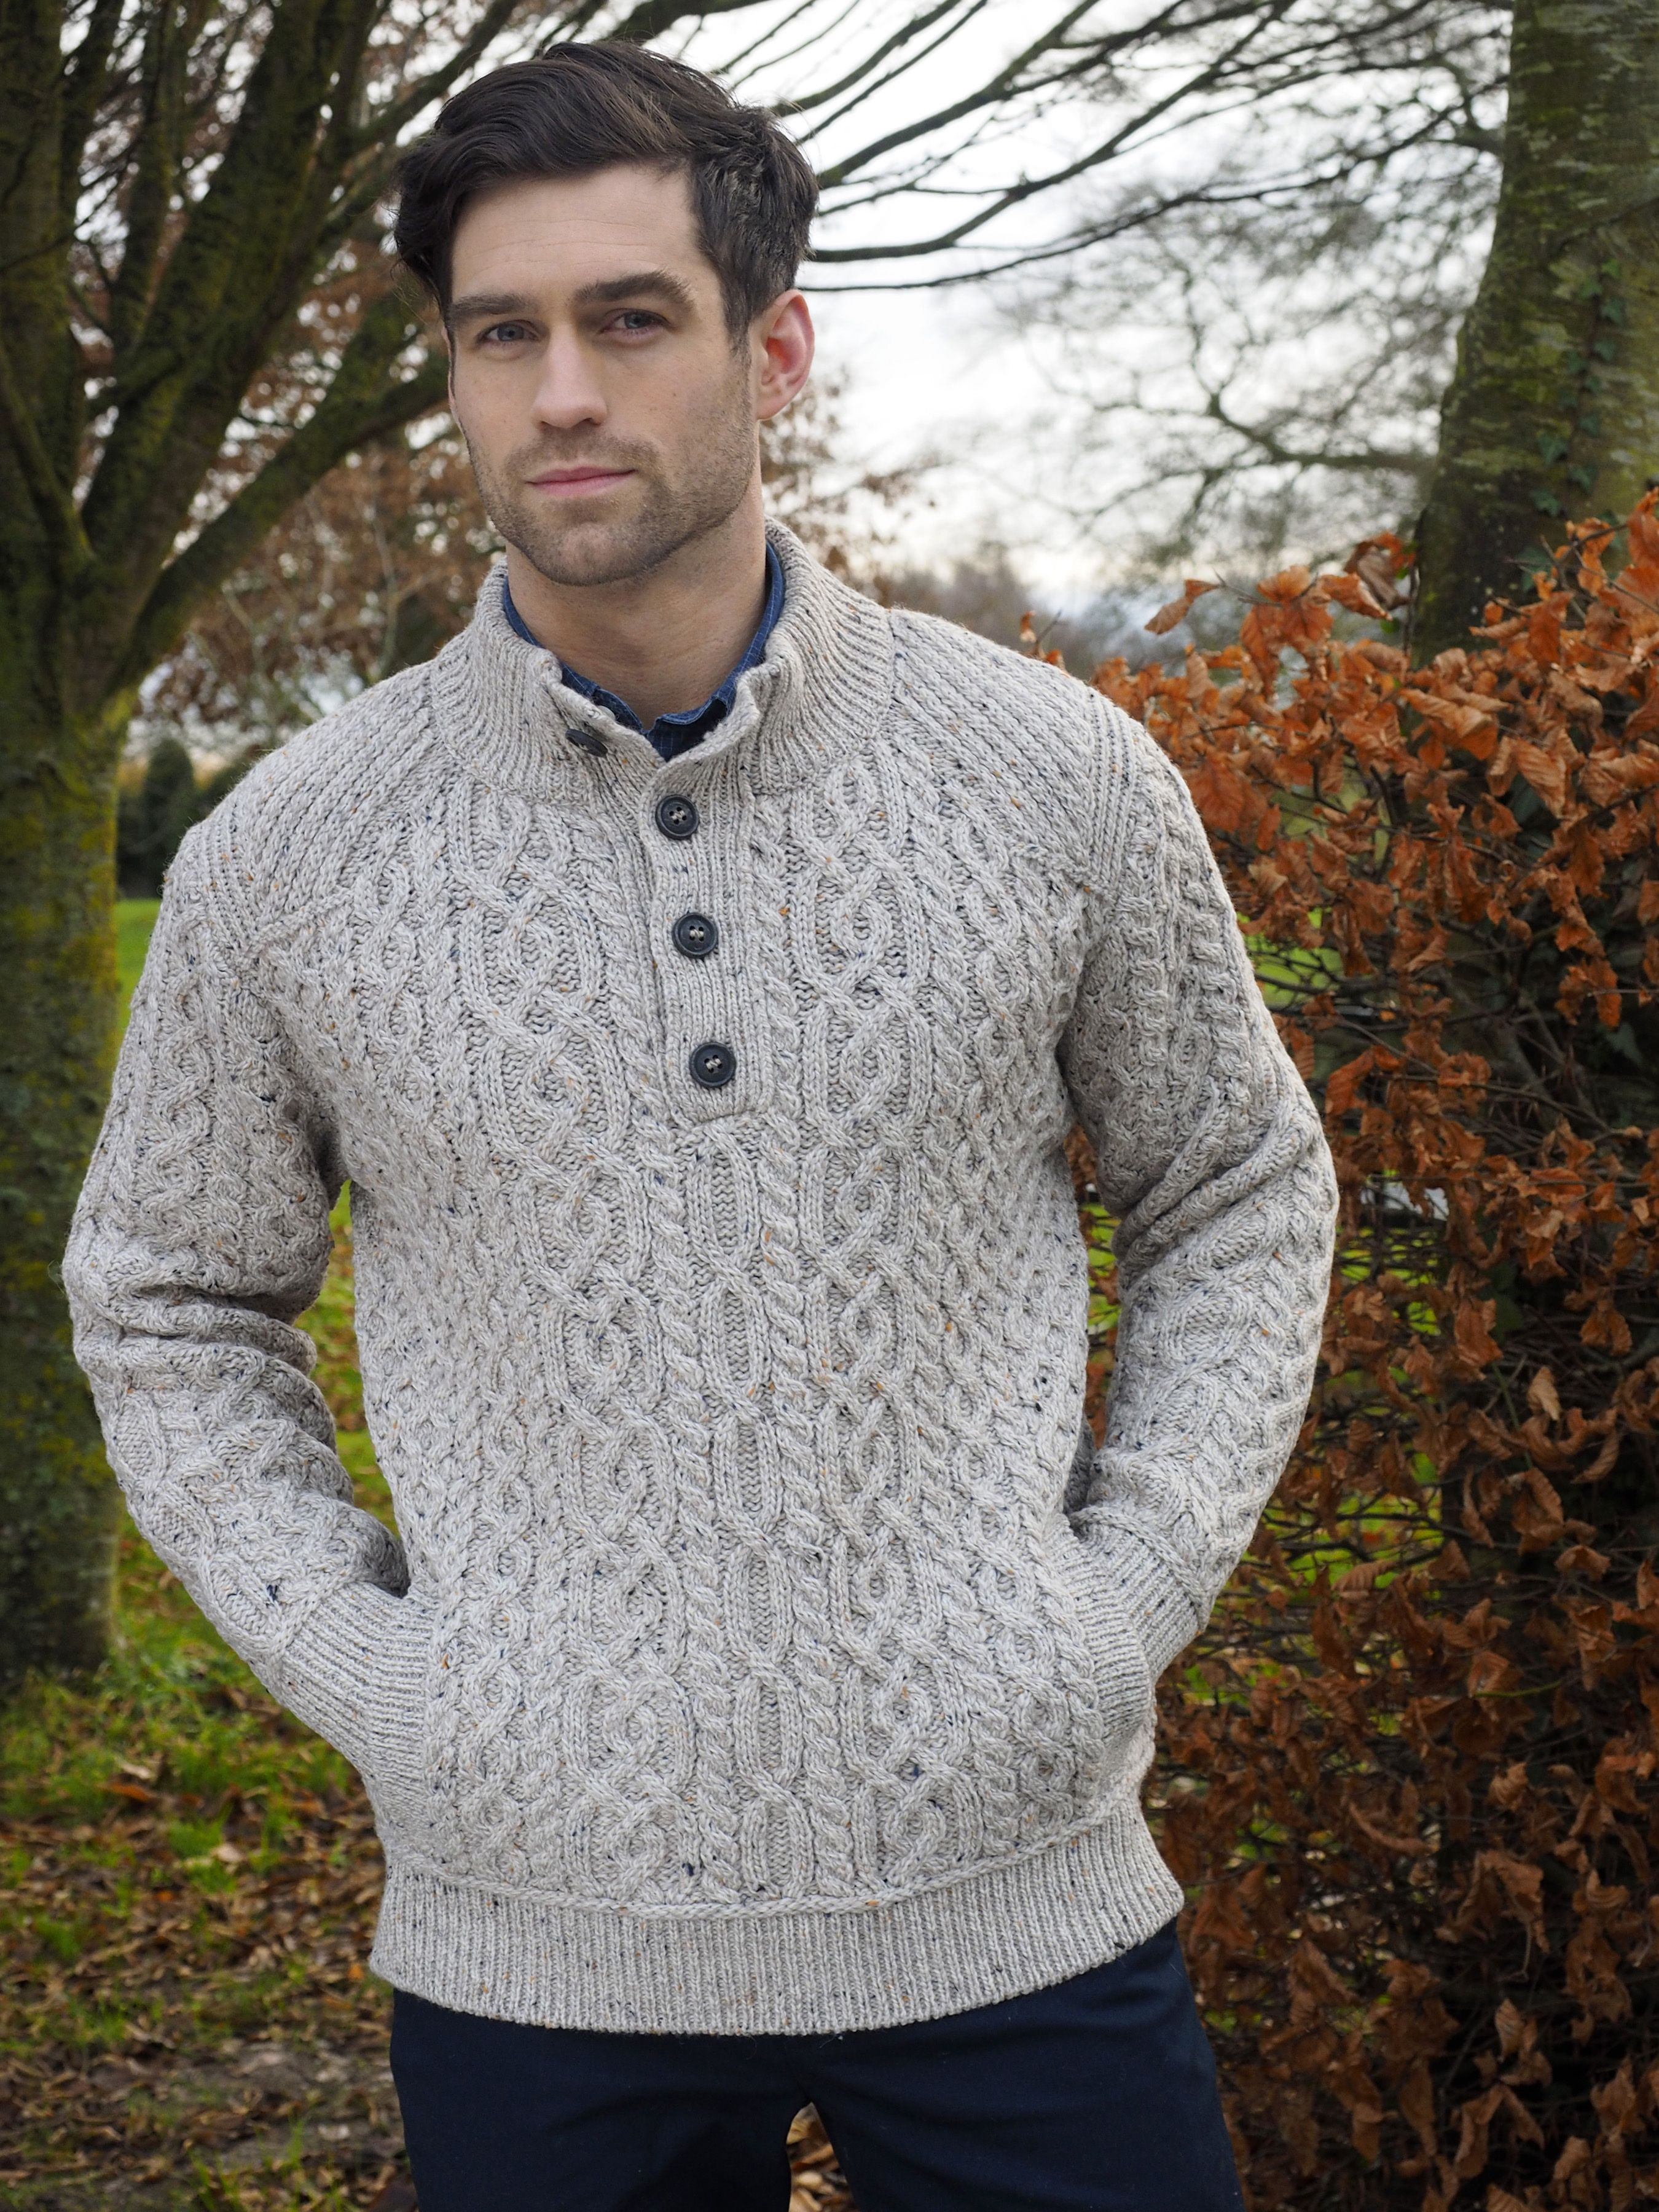 7a77b451db94dd TRADITIONAL KNIT 4 BUTTON SWEATER X4797. Find this Pin and more on Aran  design for Men by Aran Crafts Ireland.